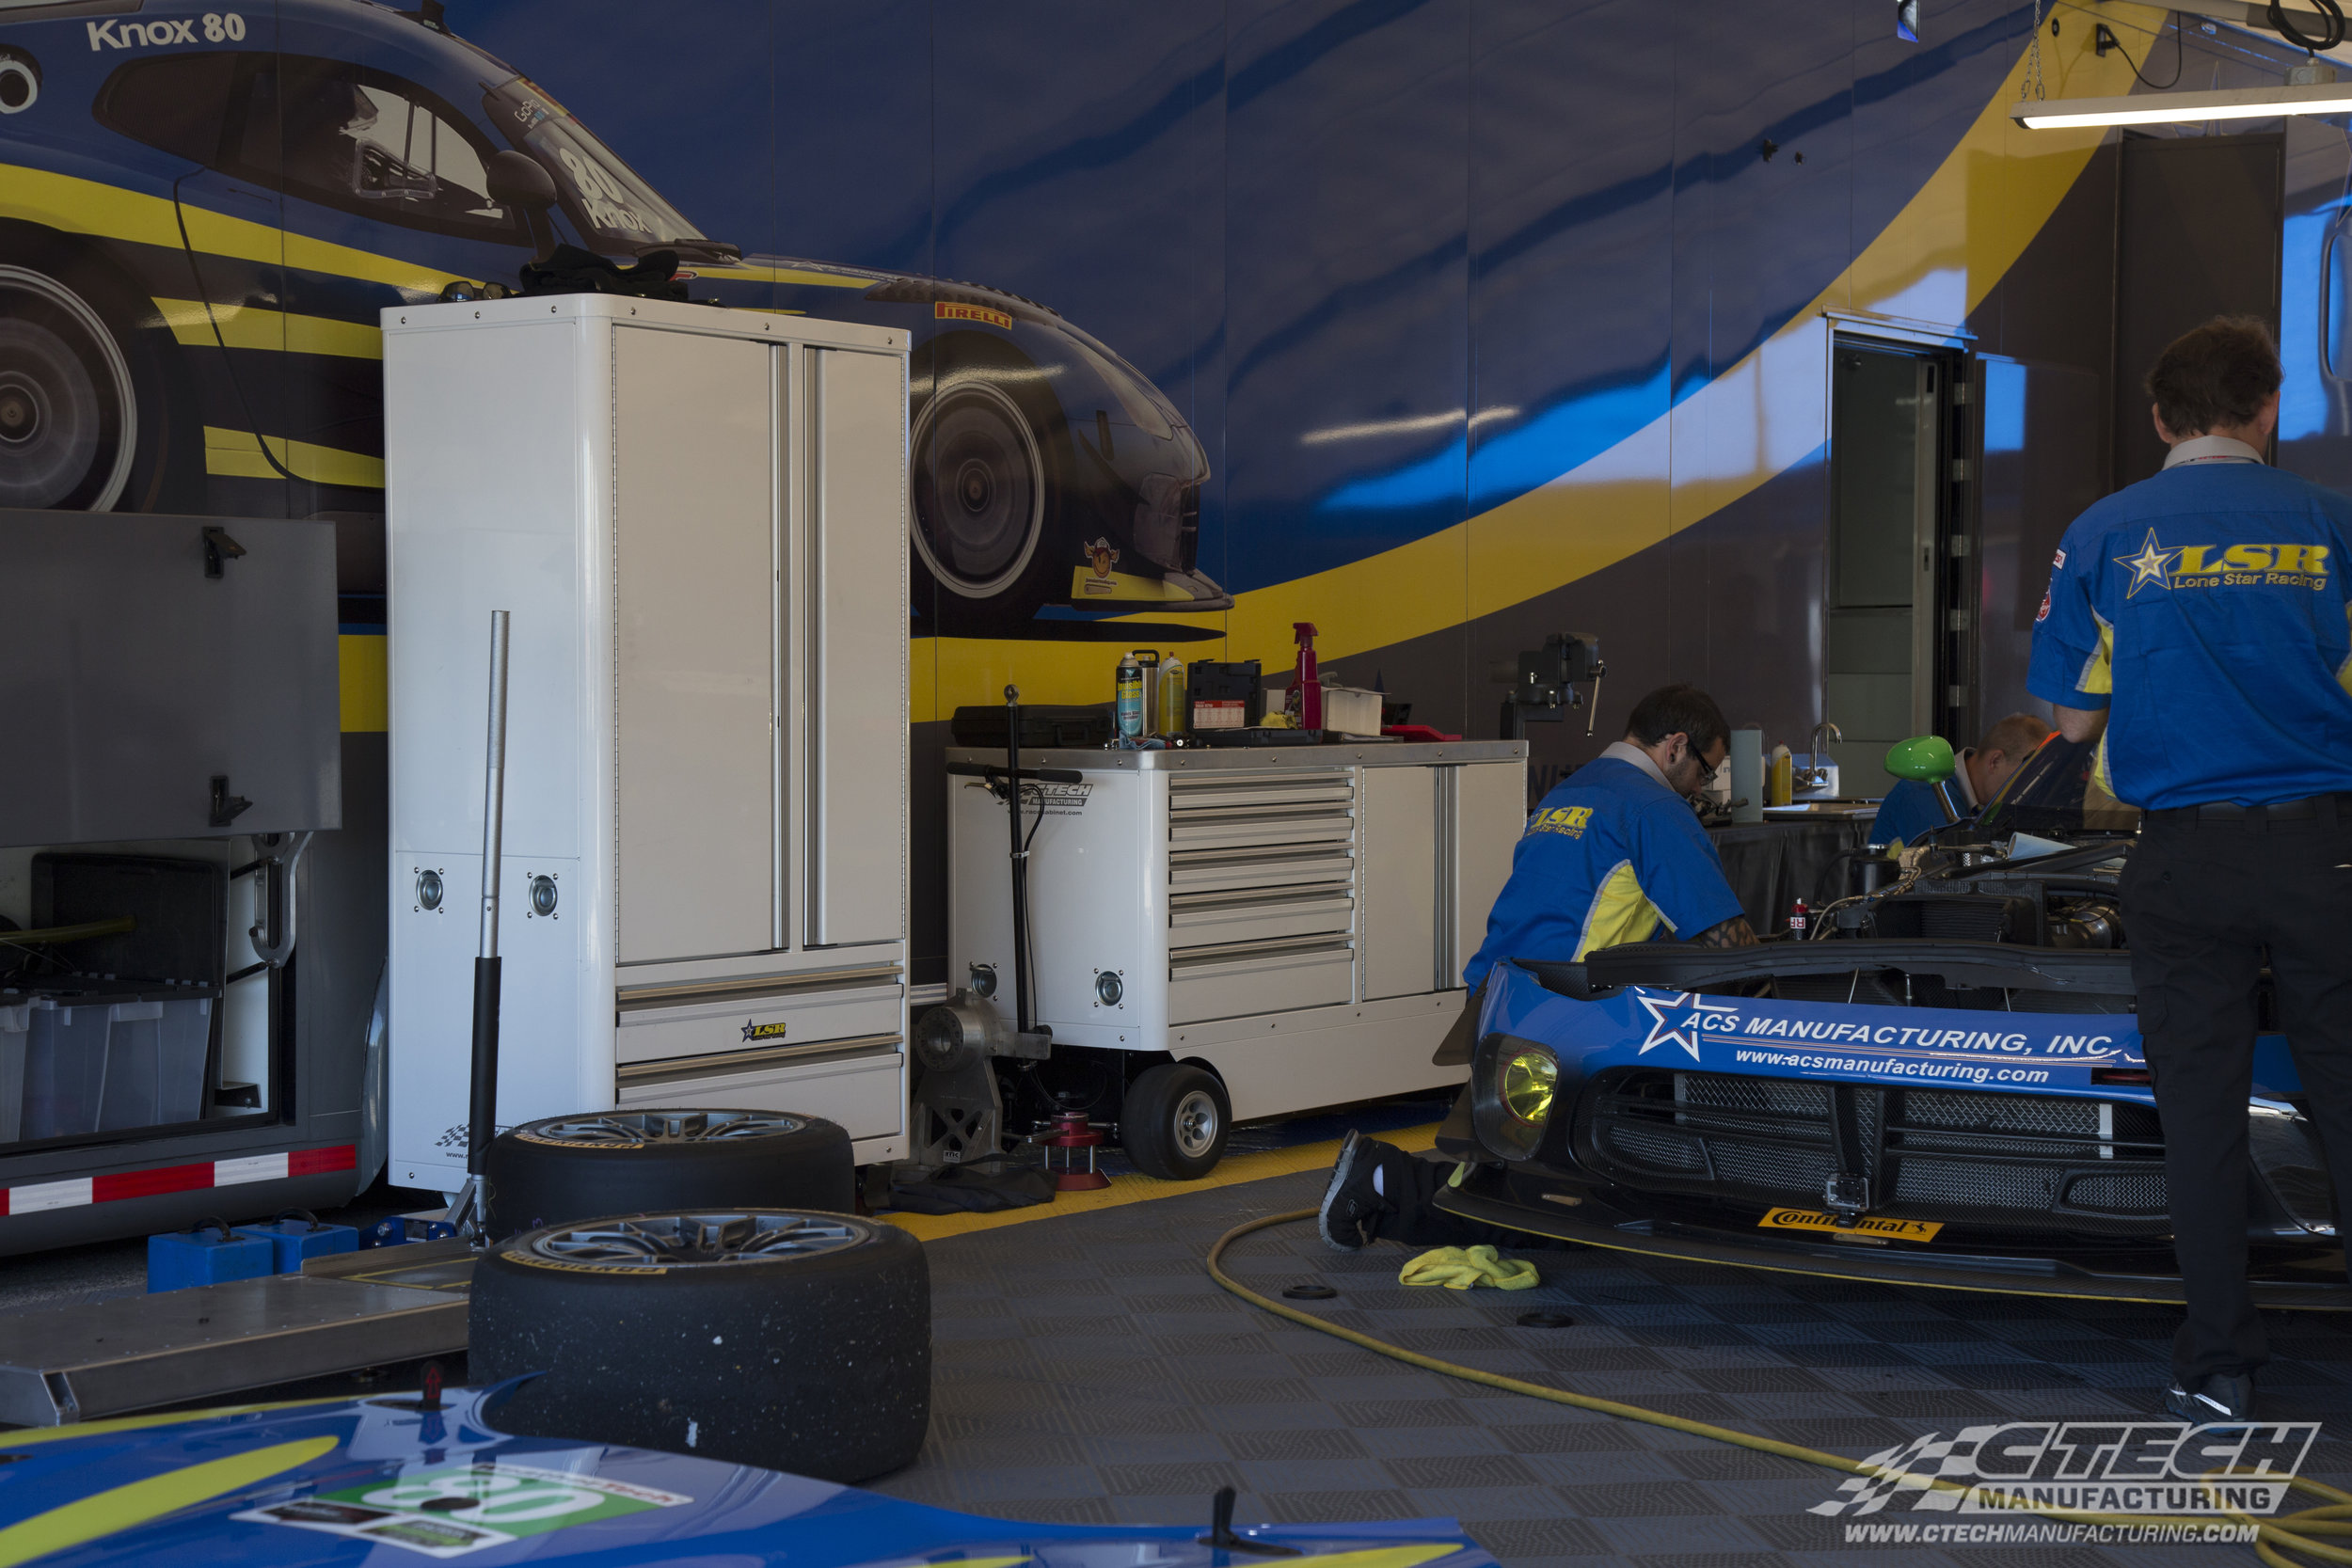 CTECH specializes in bringing the functionality of an entire garage to the paddock. Our Caster Cabinets and Mini Carts equipped with FlatFree wheels are ready to go to work immediately after being wheeled out of the trailer/transporter.